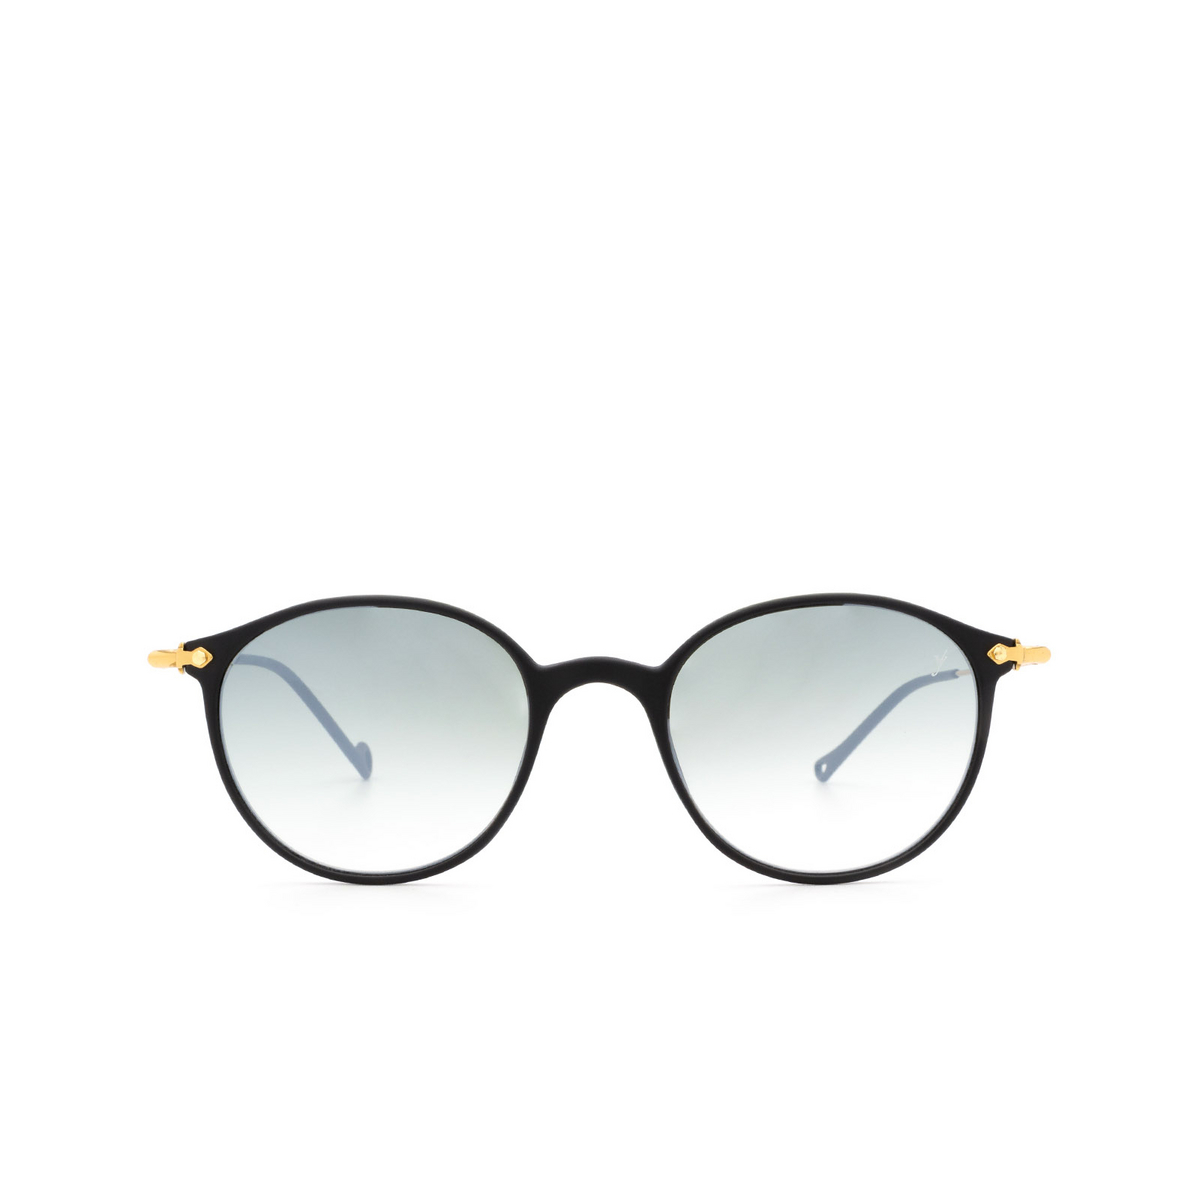 Eyepetizer® Round Sunglasses: Longisland color Black C.A-4-25F - front view.